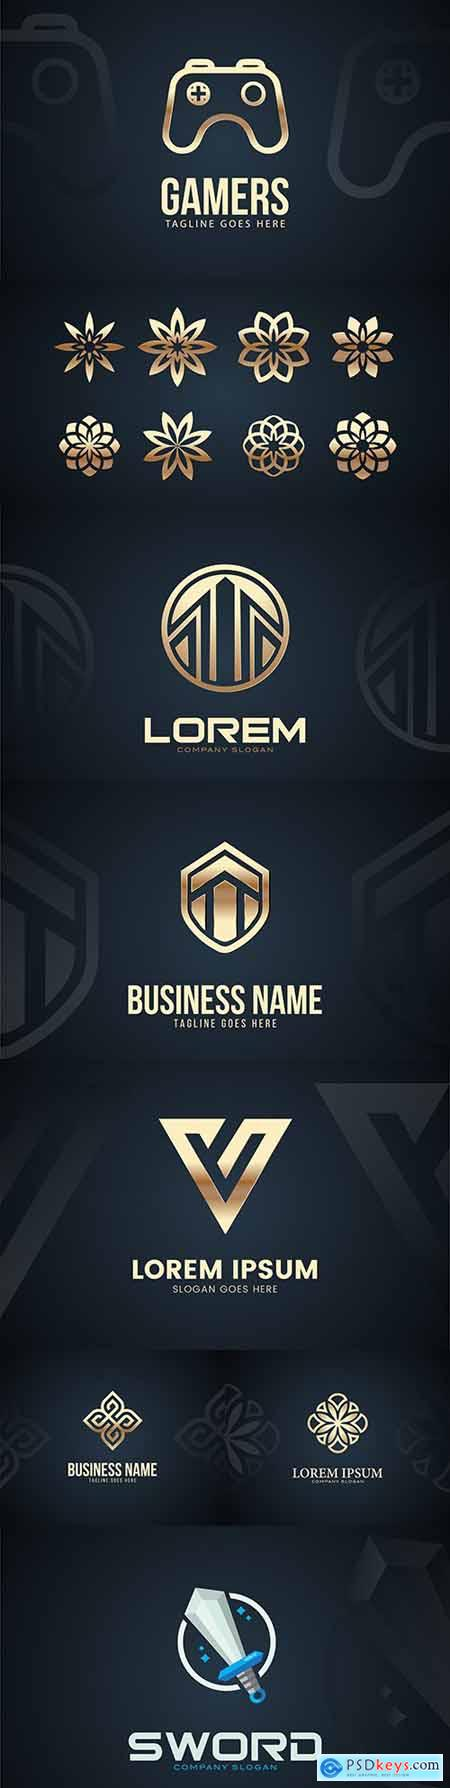 Modern and luxurious design template logo gold color